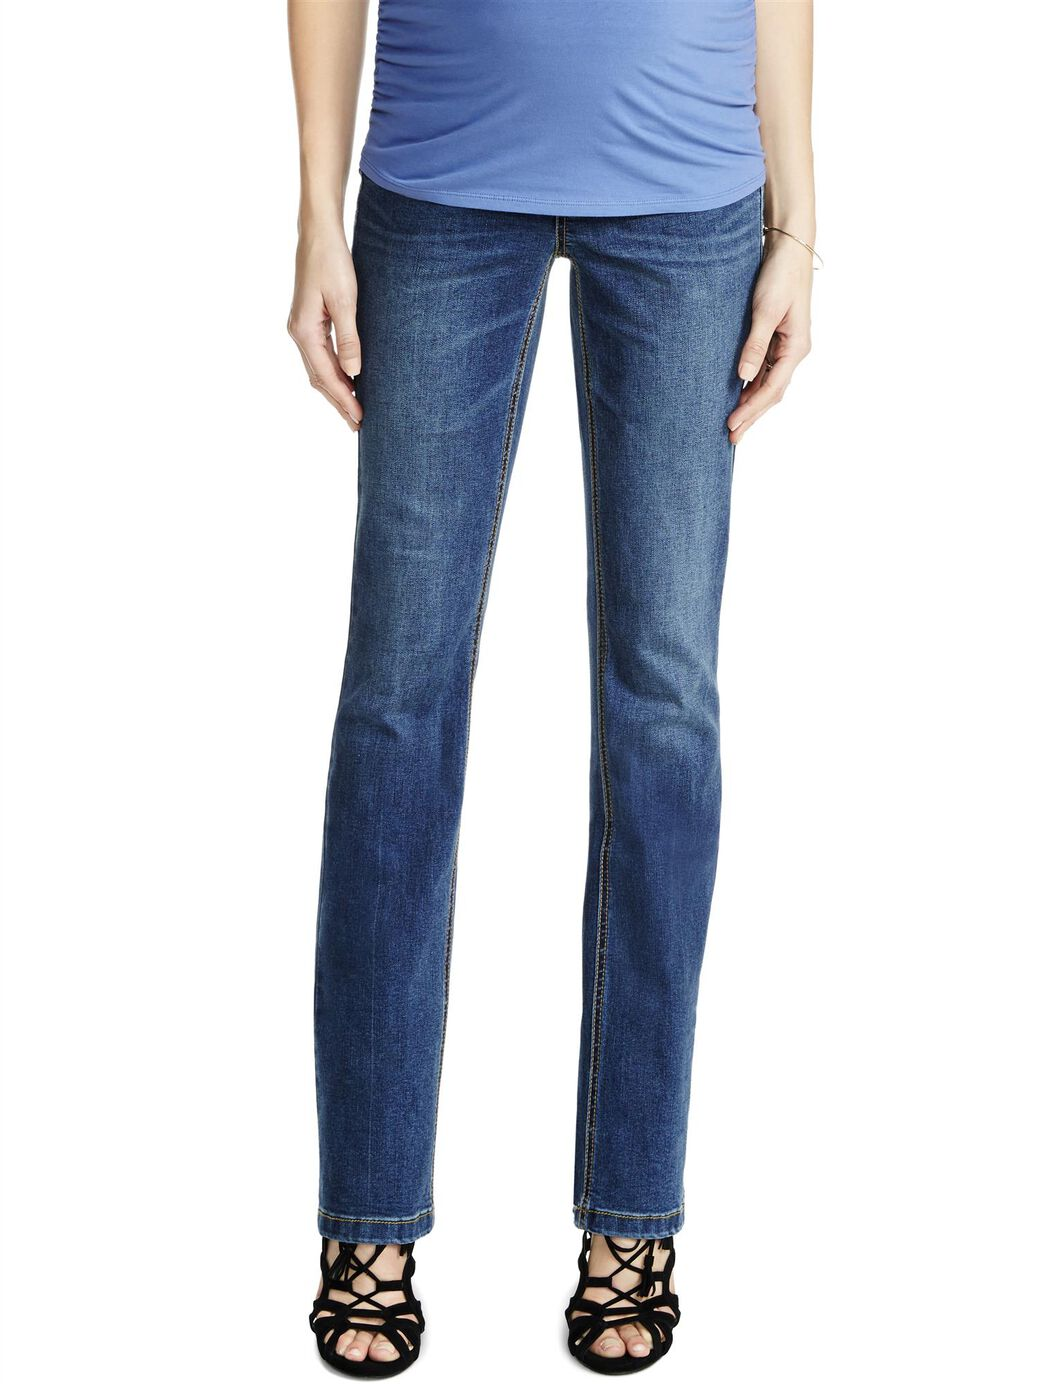 Jessica Simpson Petite Secret Fit Belly Skinny Boot Maternity Jeans at Motherhood Maternity in Victor, NY | Tuggl